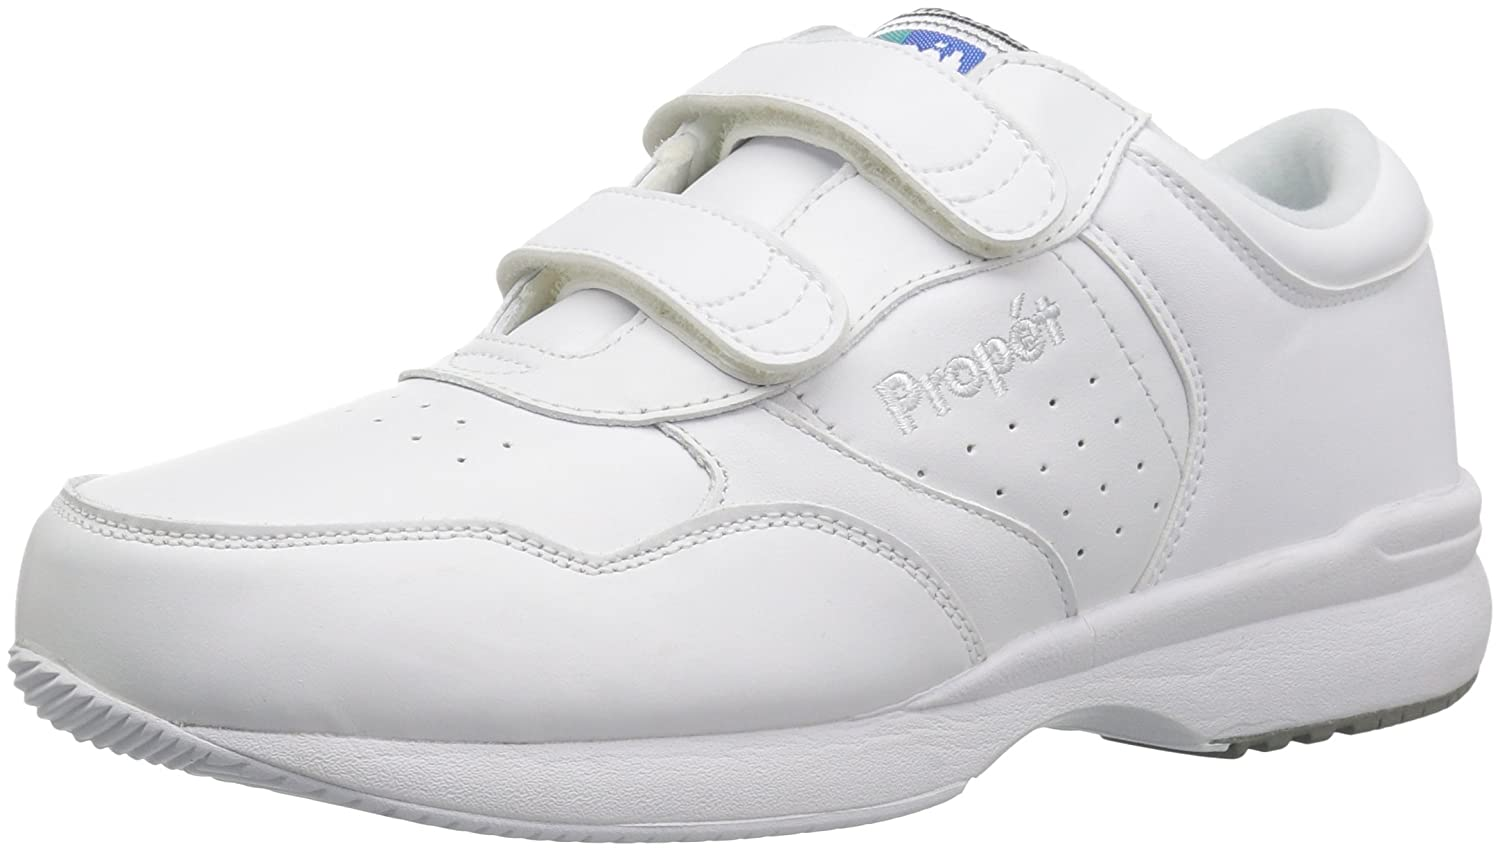 Propet Life Walker 2 Men/'s Walking Shoes White New in the Box